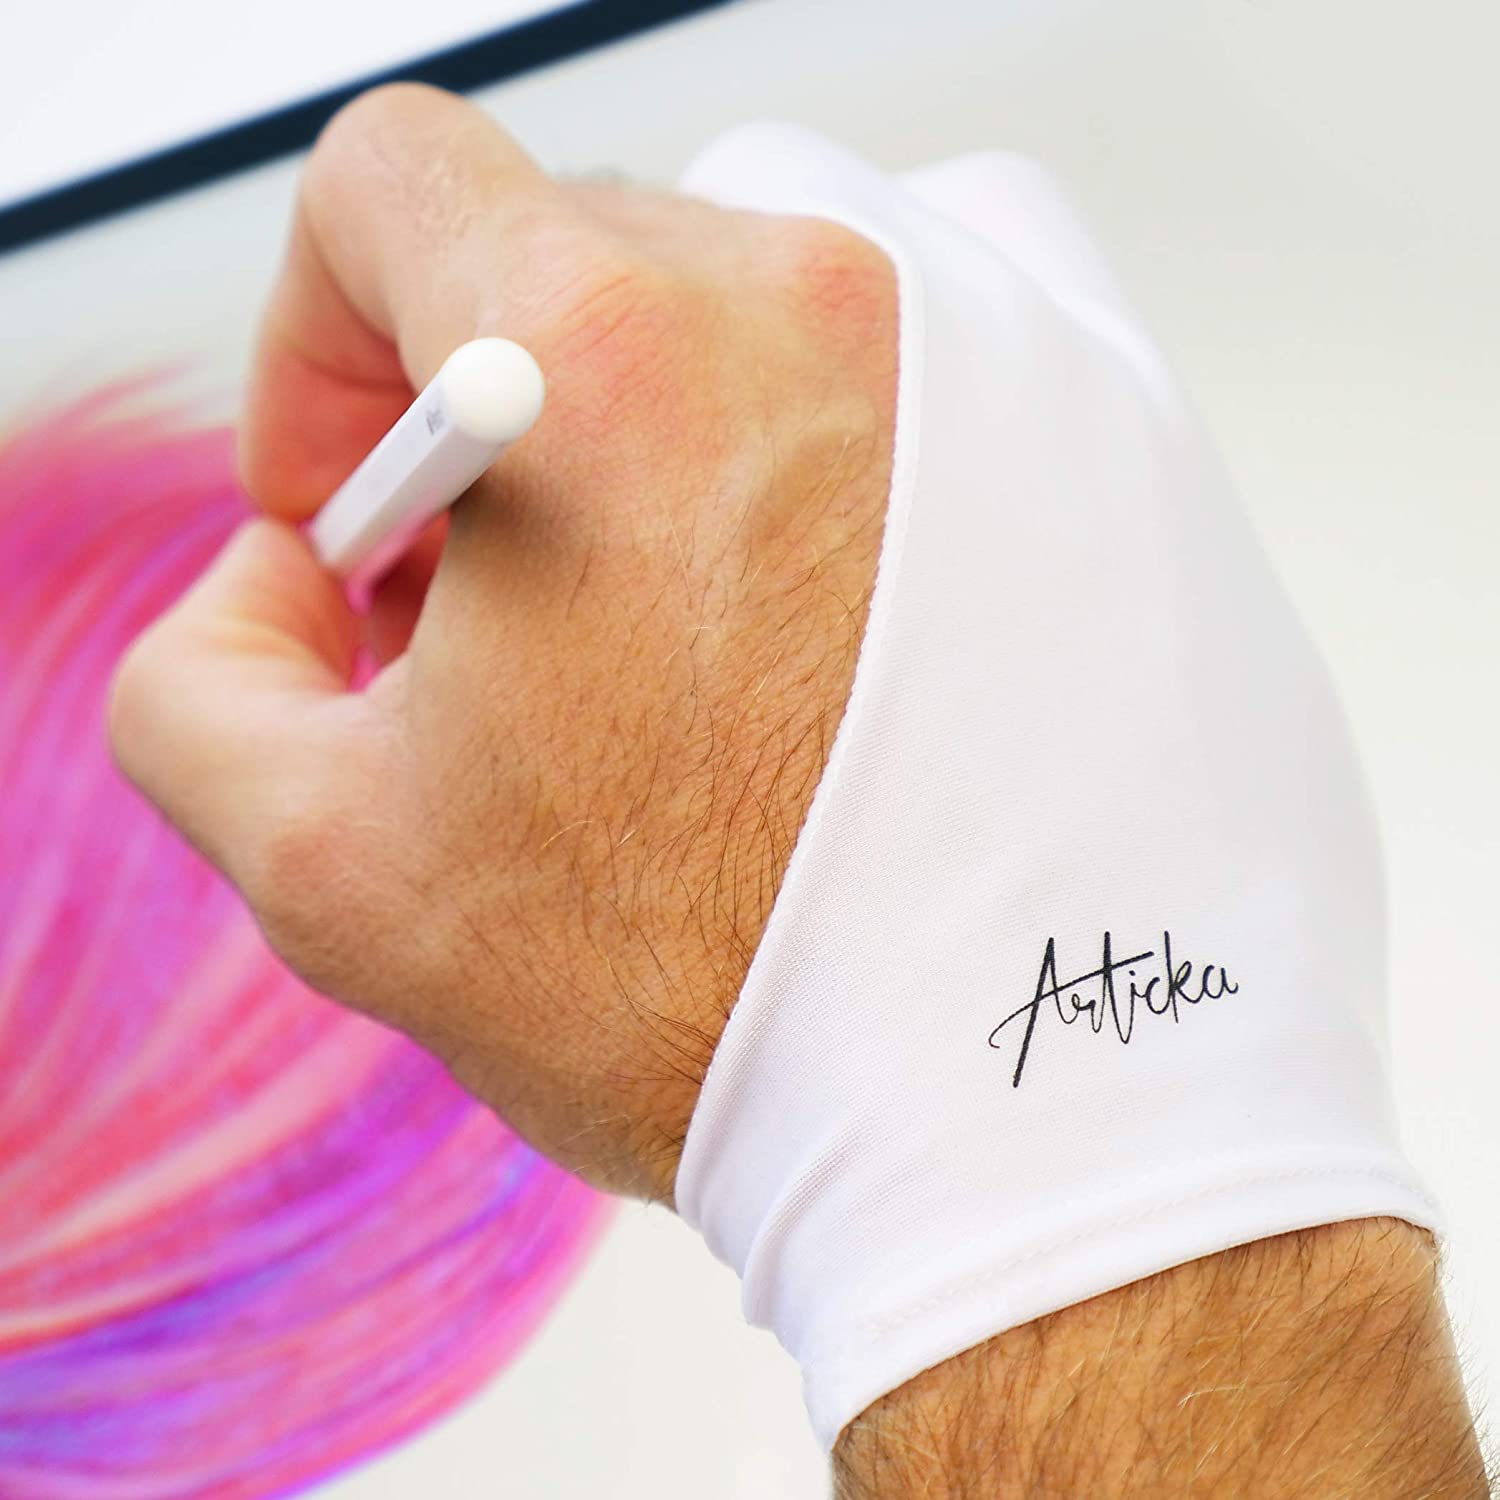 Articka Artist Glove for Drawing Tablet, iPad (Smudge Guard, Two-Finger, Reduces Friction, Elastic Lycra, Good for Right and Left Hand) White (Large)